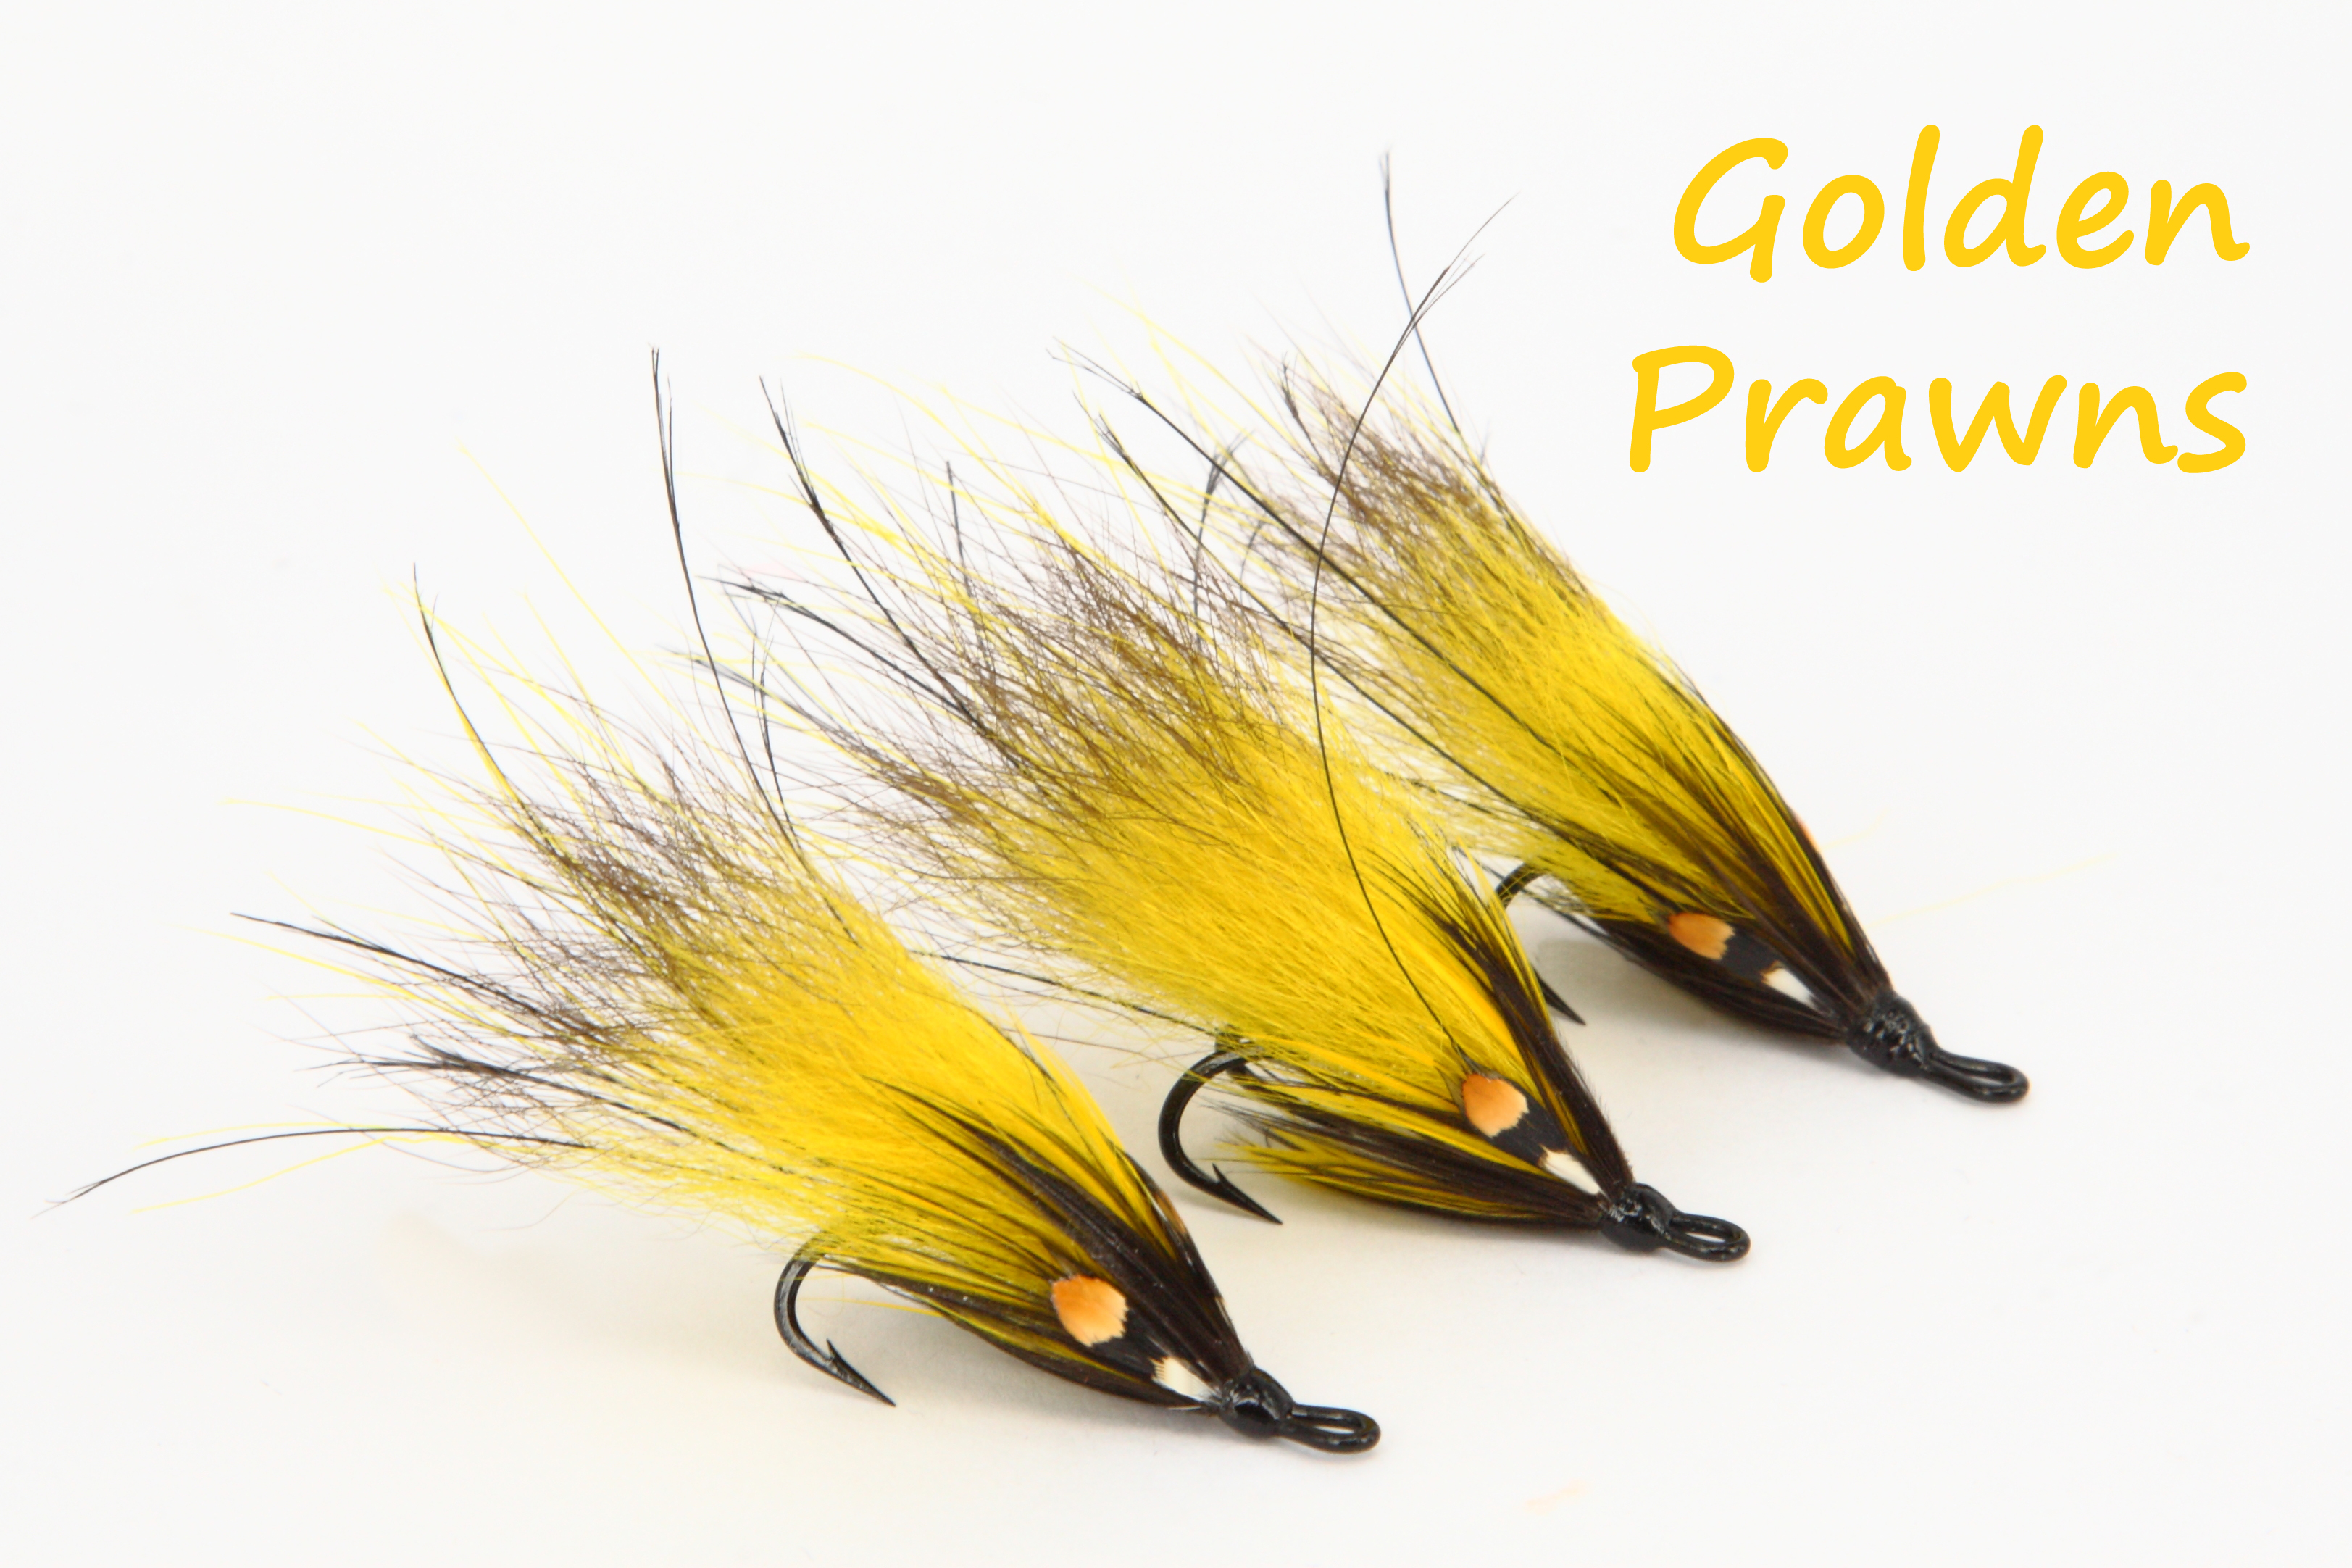 Golden Prawns Trio FDG copy.jpg